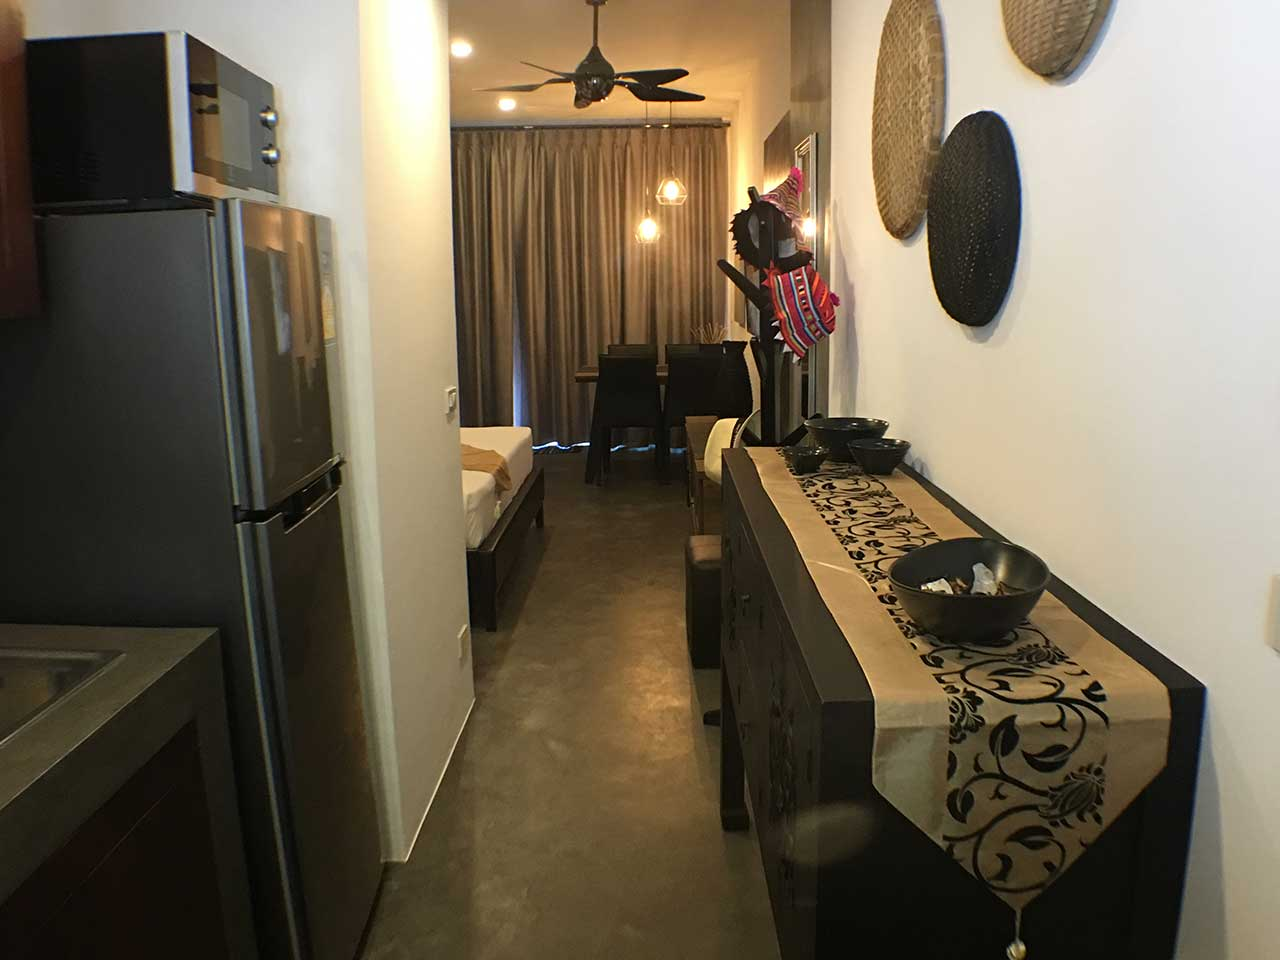 maphrao-resort-kamala-beach-phuket-rooms-interior-STUDIO-23-APARTMENT-02